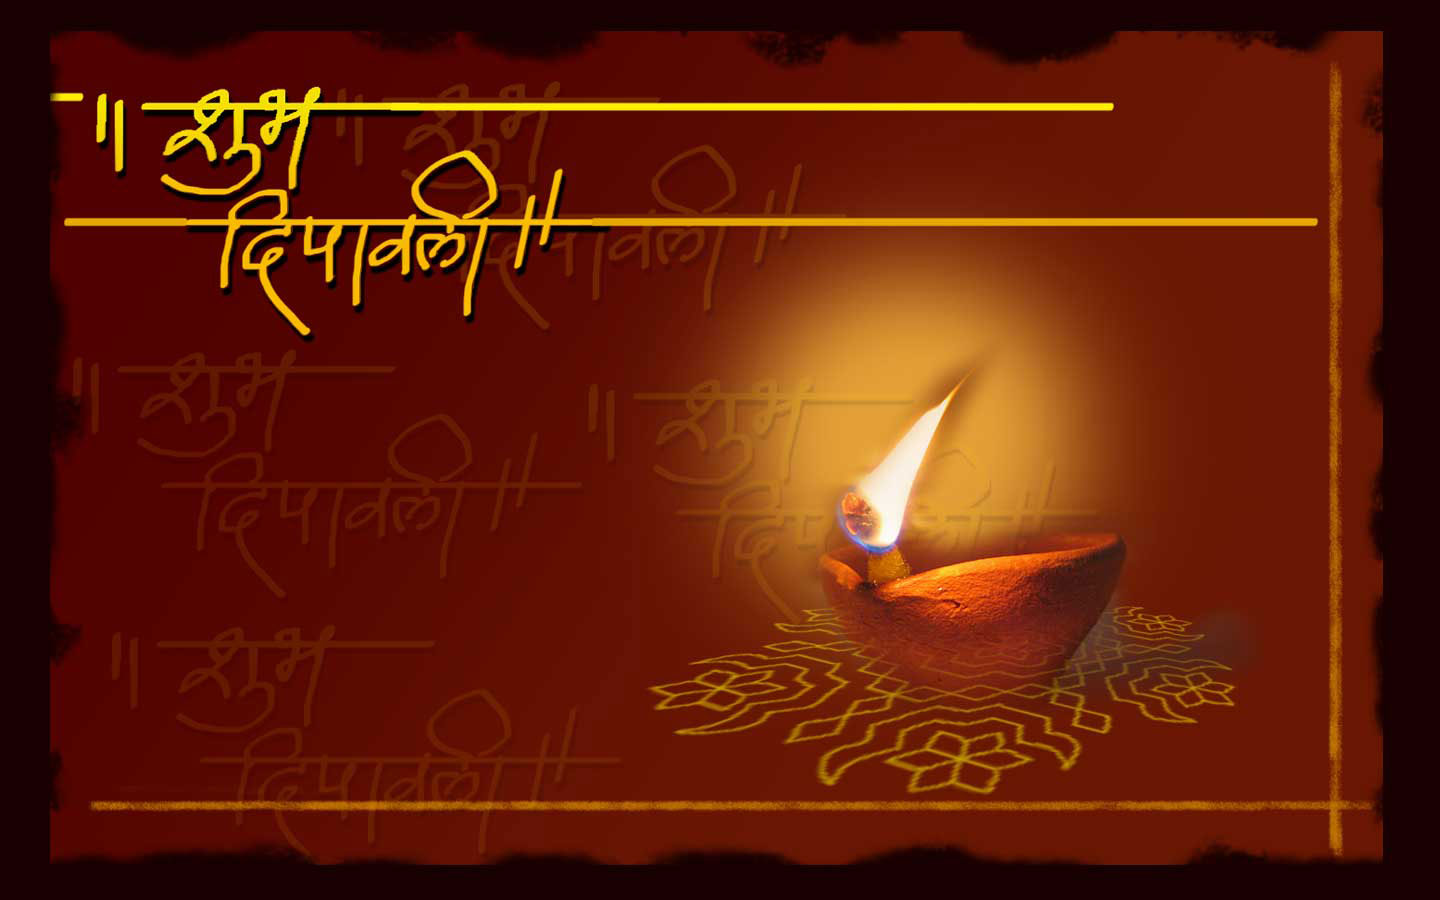 October 2017 happy diwali wishes quotes gifs images latest shubh diwali in hindi 1000 wallpaper script msg images kristyandbryce Gallery